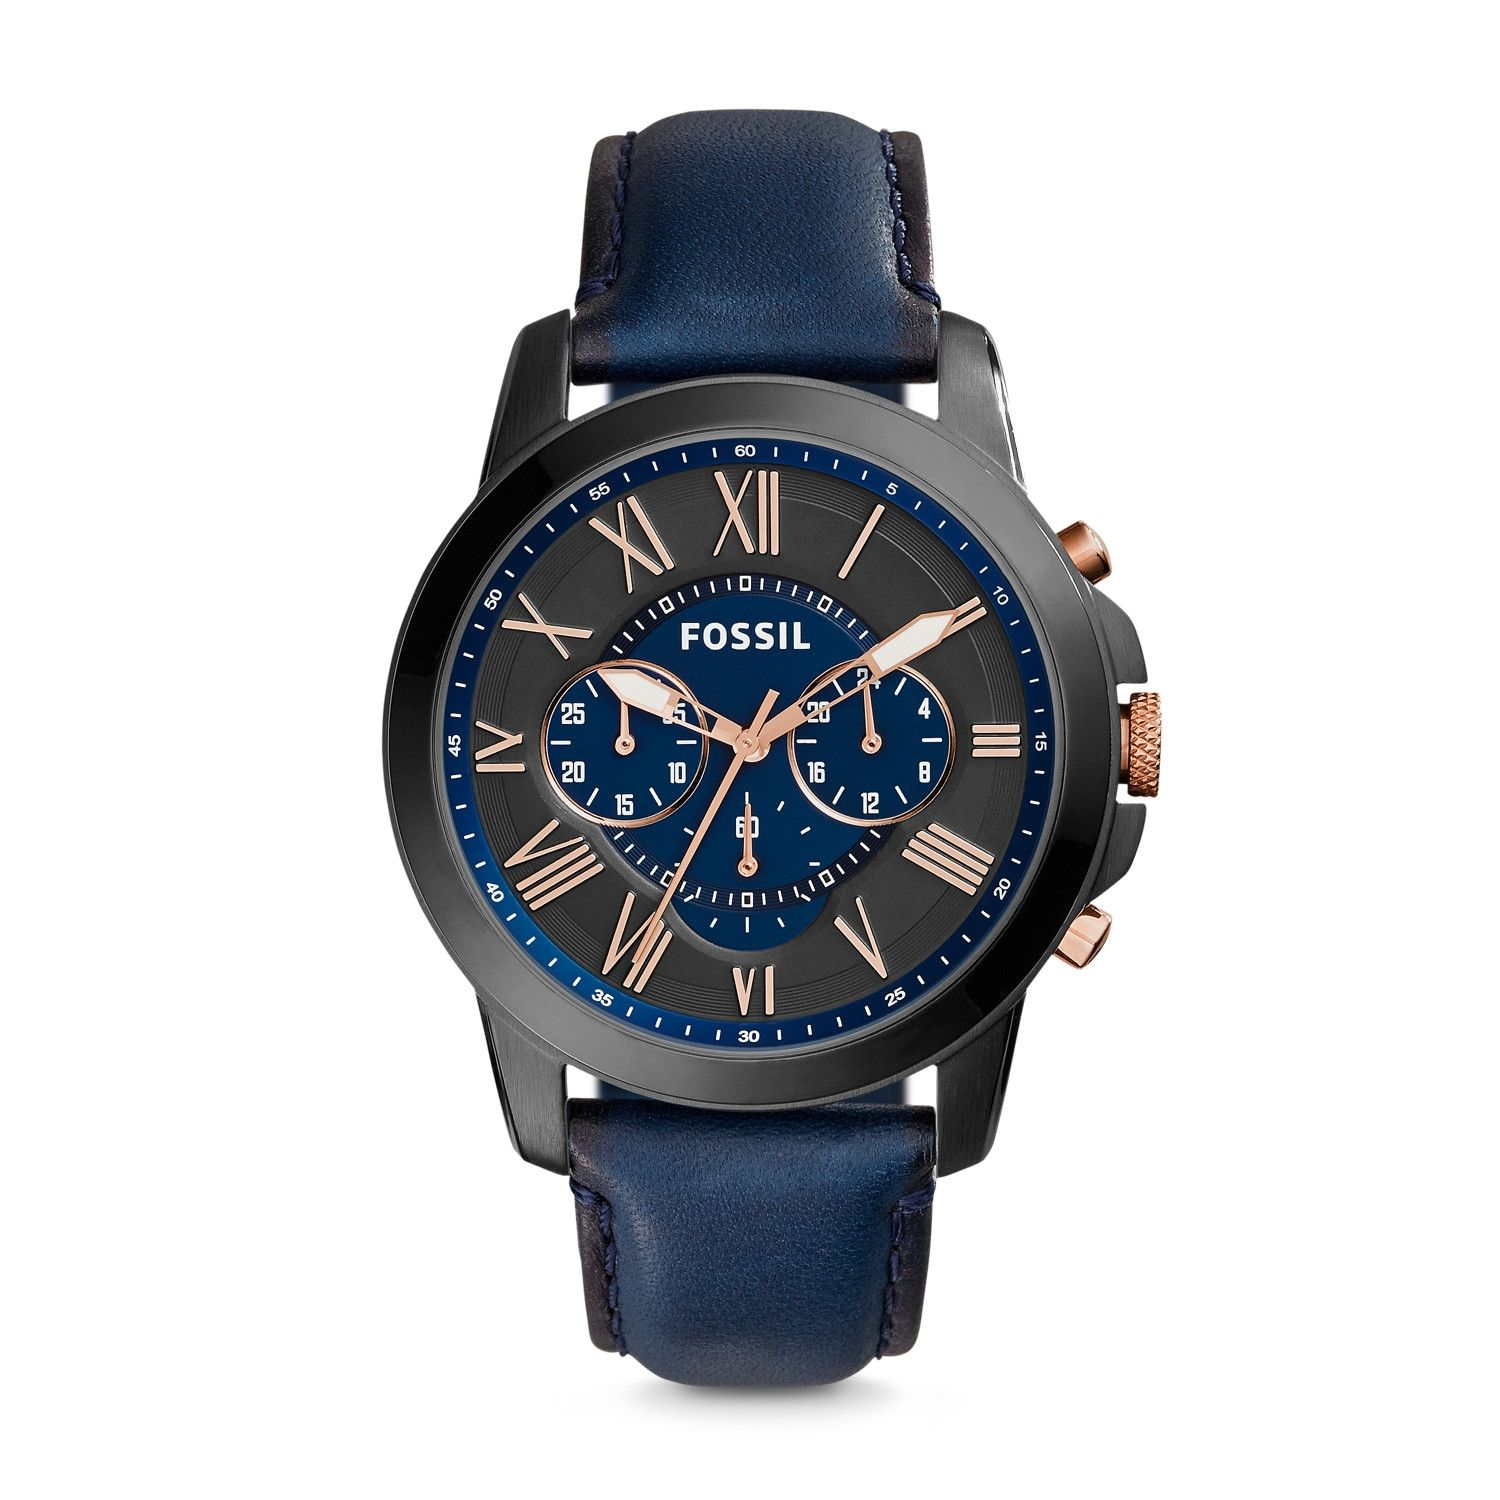 9a28e9d2c Fossil Fossil Grant Analog Blue Dial Men's Watch - FS5061 ...